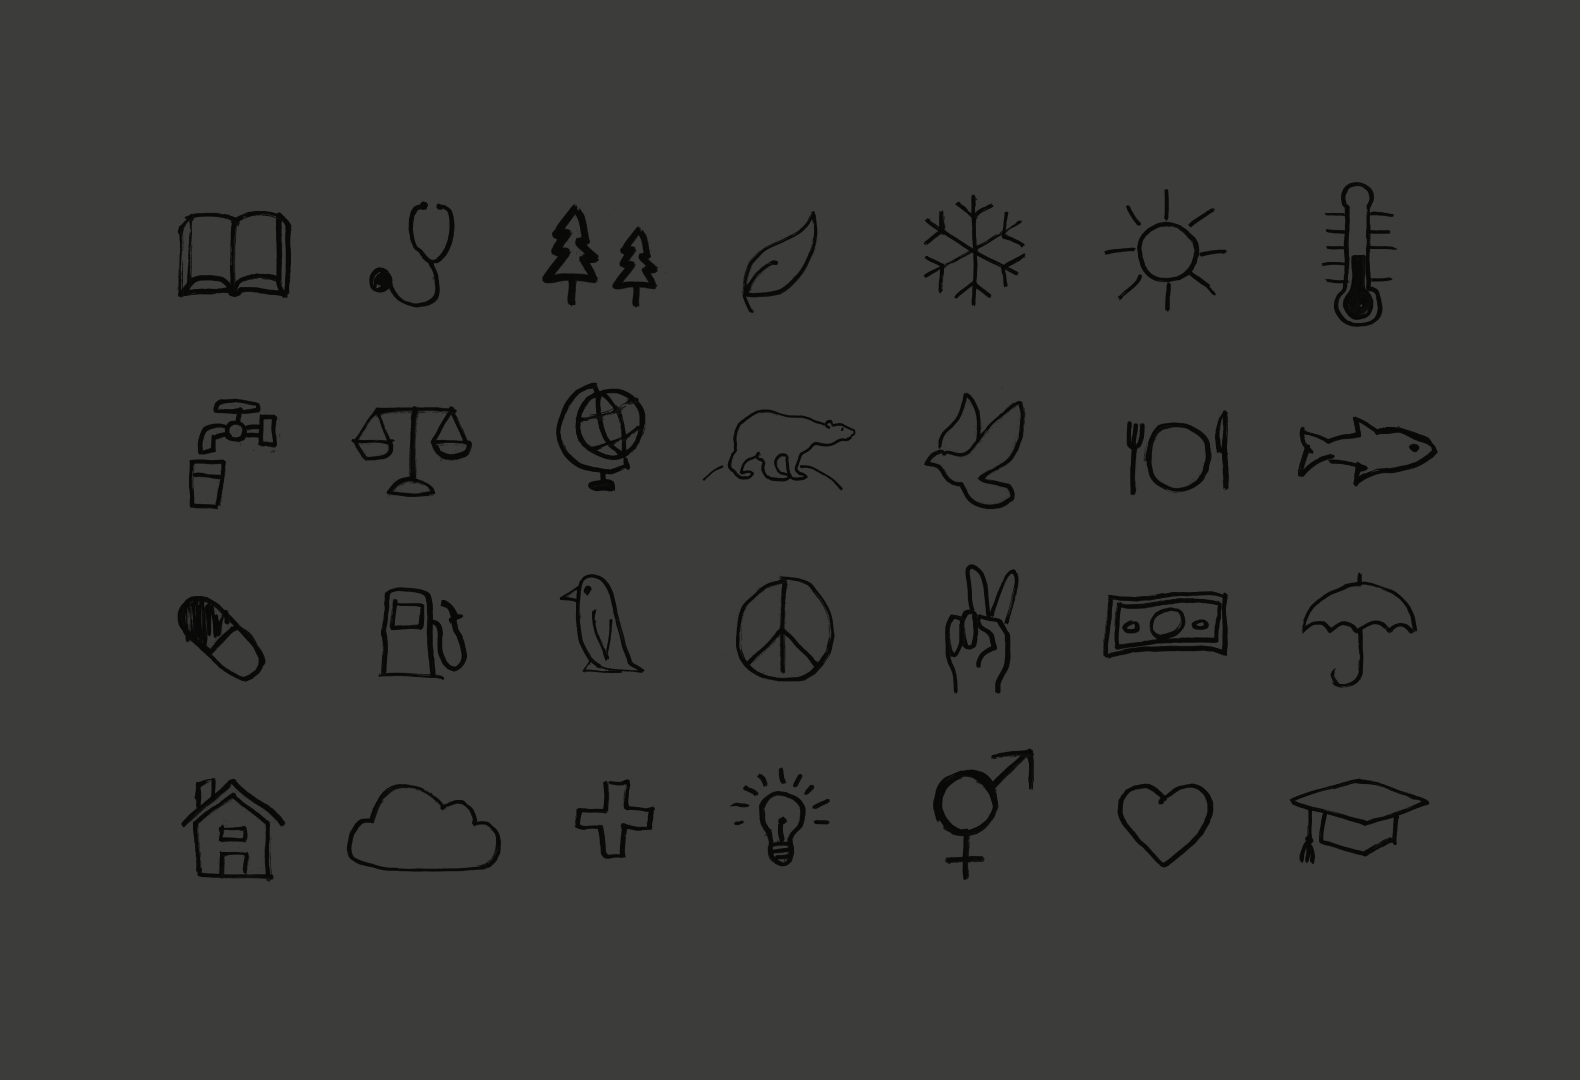 Custom icons for the Project Everyone branding.